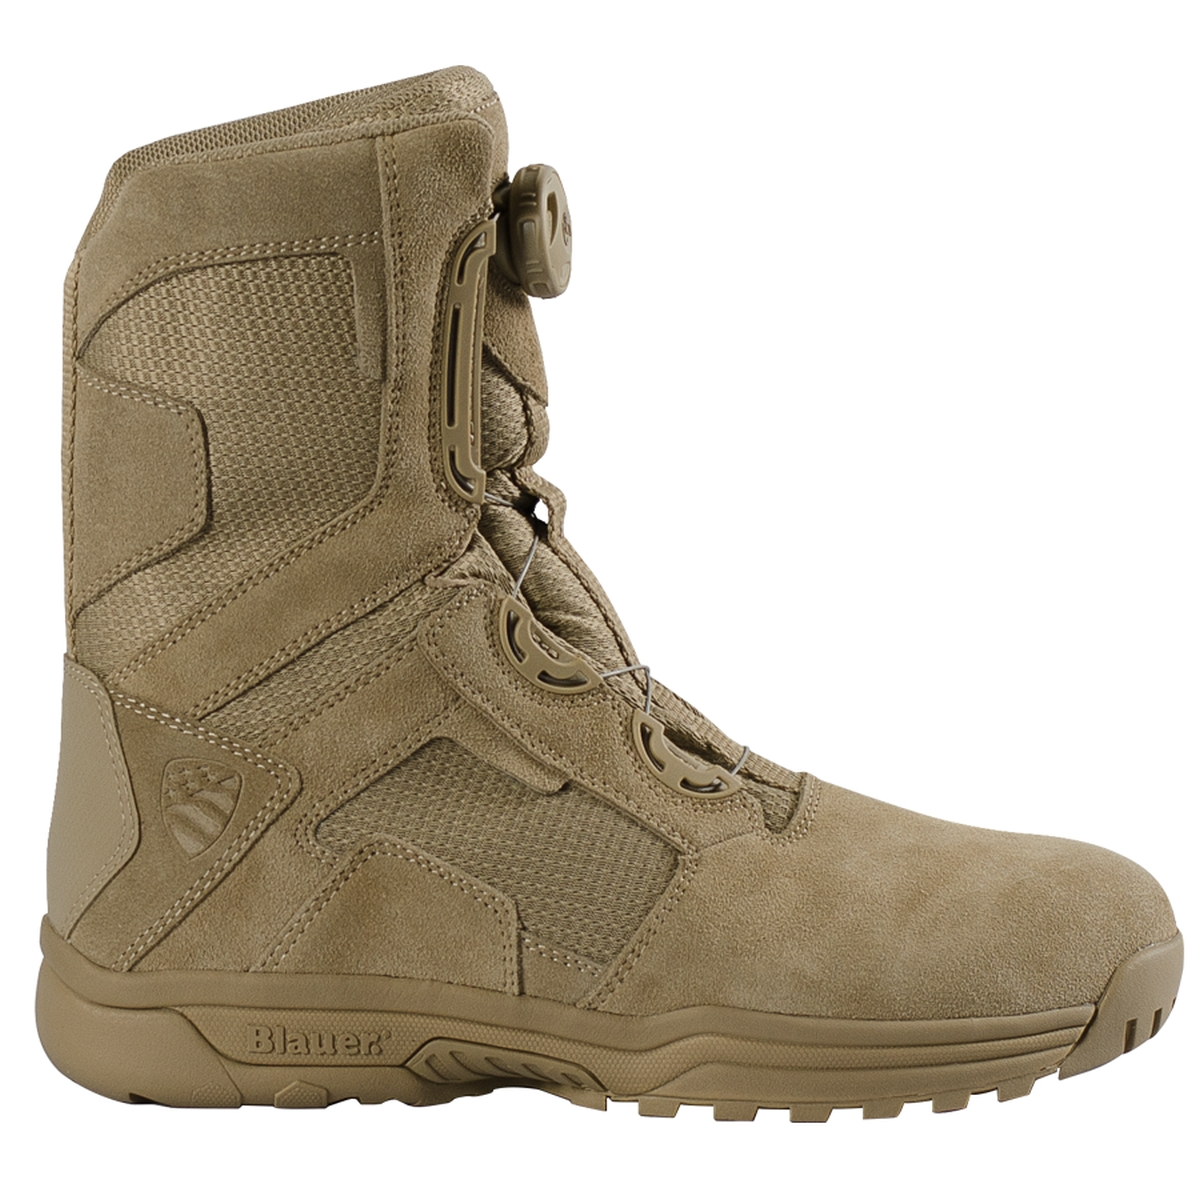 "Clash Lt Boot 8 Boa System""-"